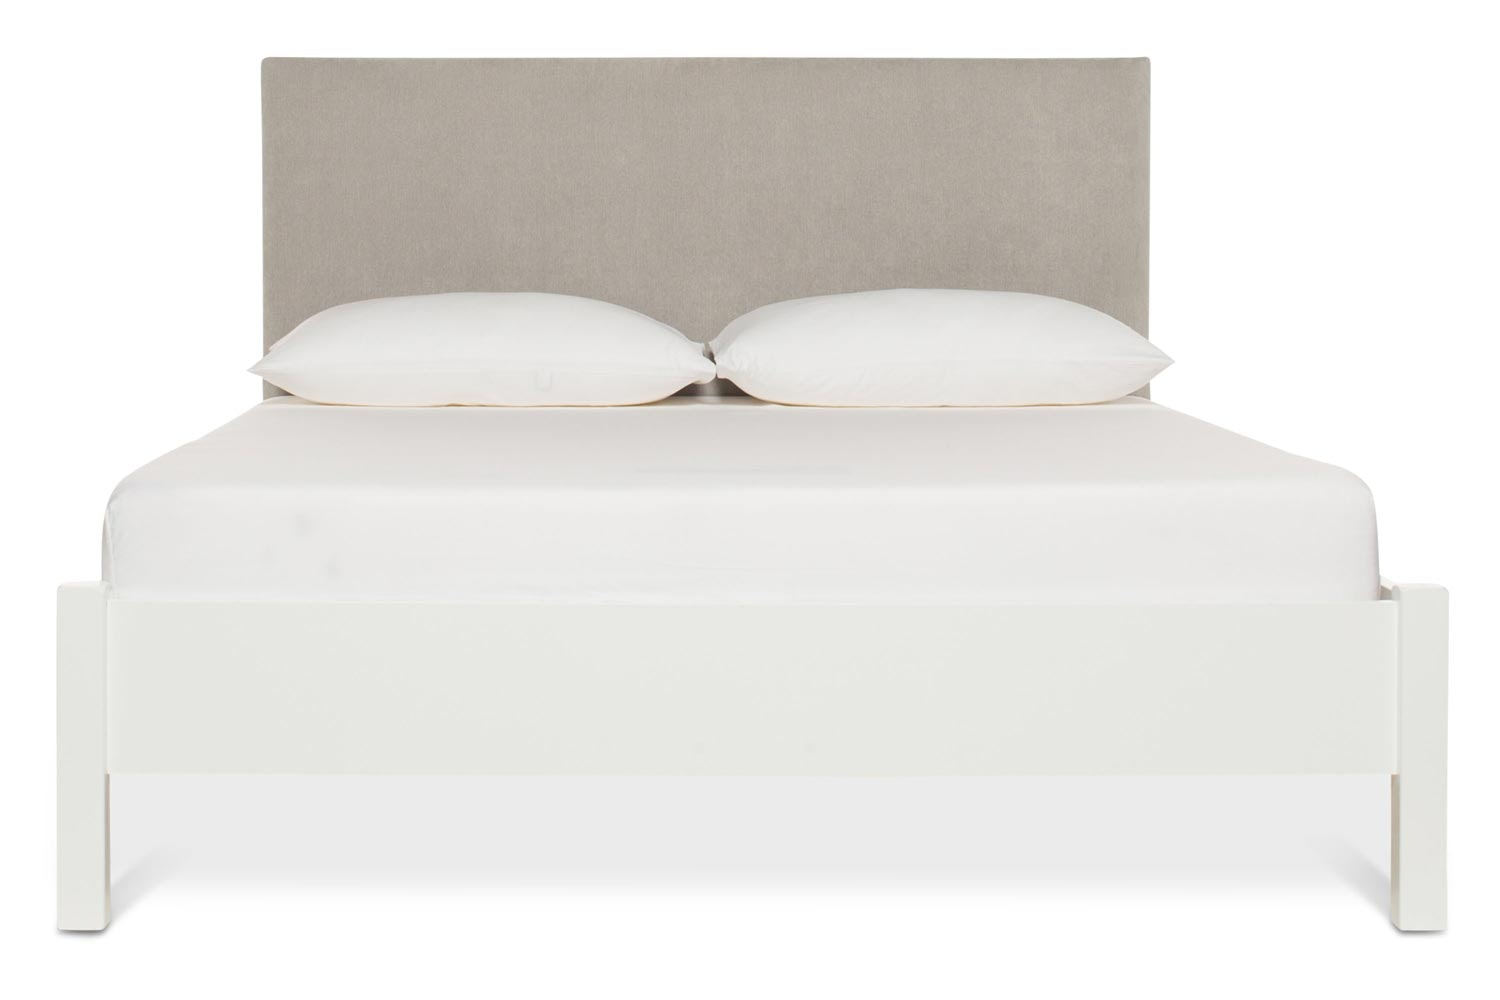 Emily Loft White Bed Frame | 6FT | Dylan Headboard Silver